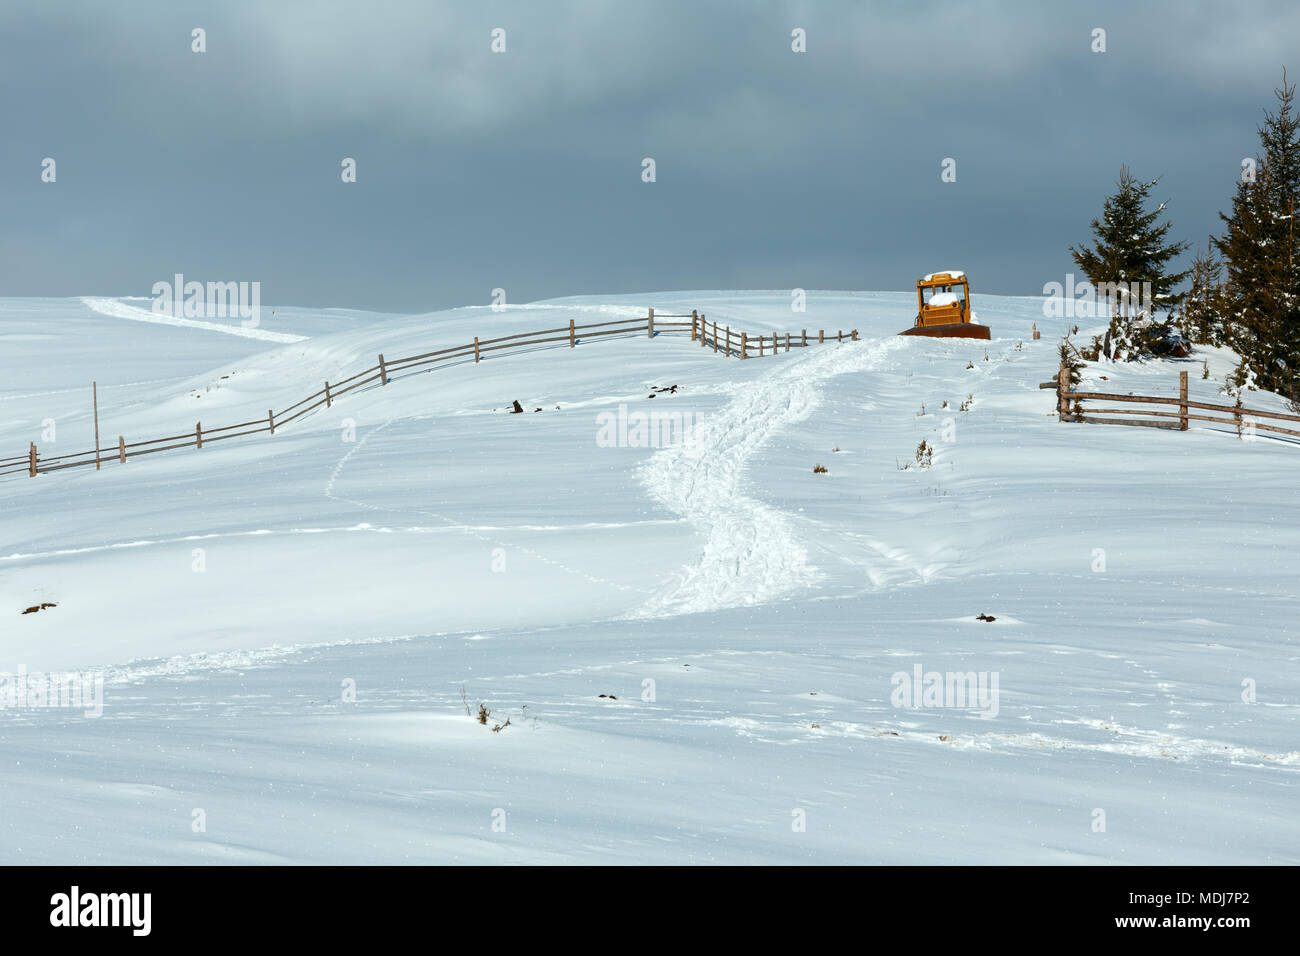 Winter  morning scenery picturesque mountain rural snow covered path and blocked by snow bulldozer on hill top (Ukraine, Carpathian Mountains, tranqui - Stock Image